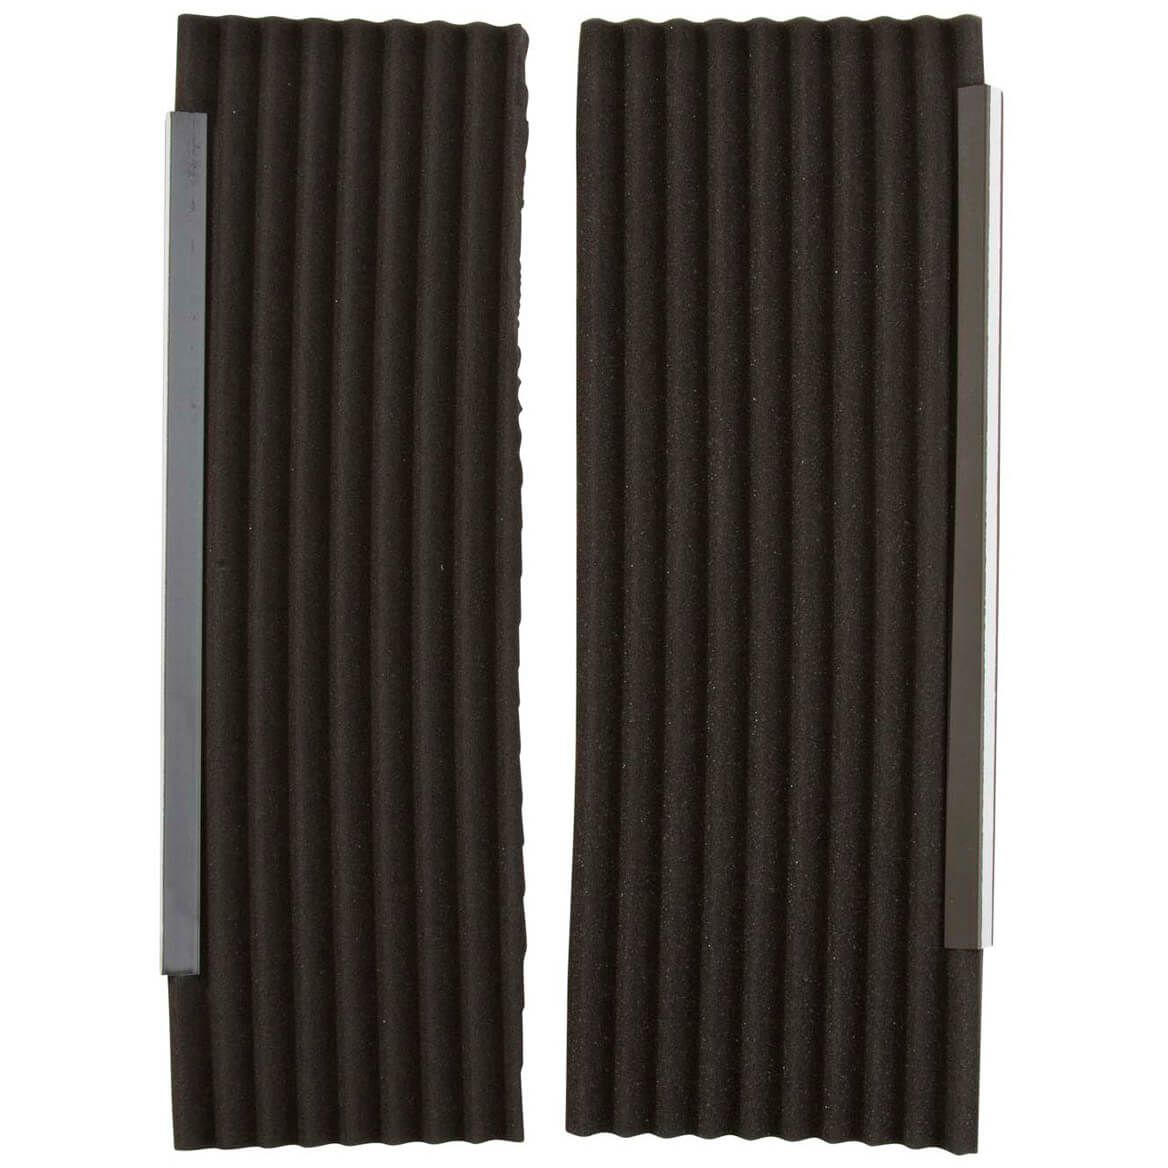 A/C Side Insulation Panels Set of 2 by LivingSURE™-329055